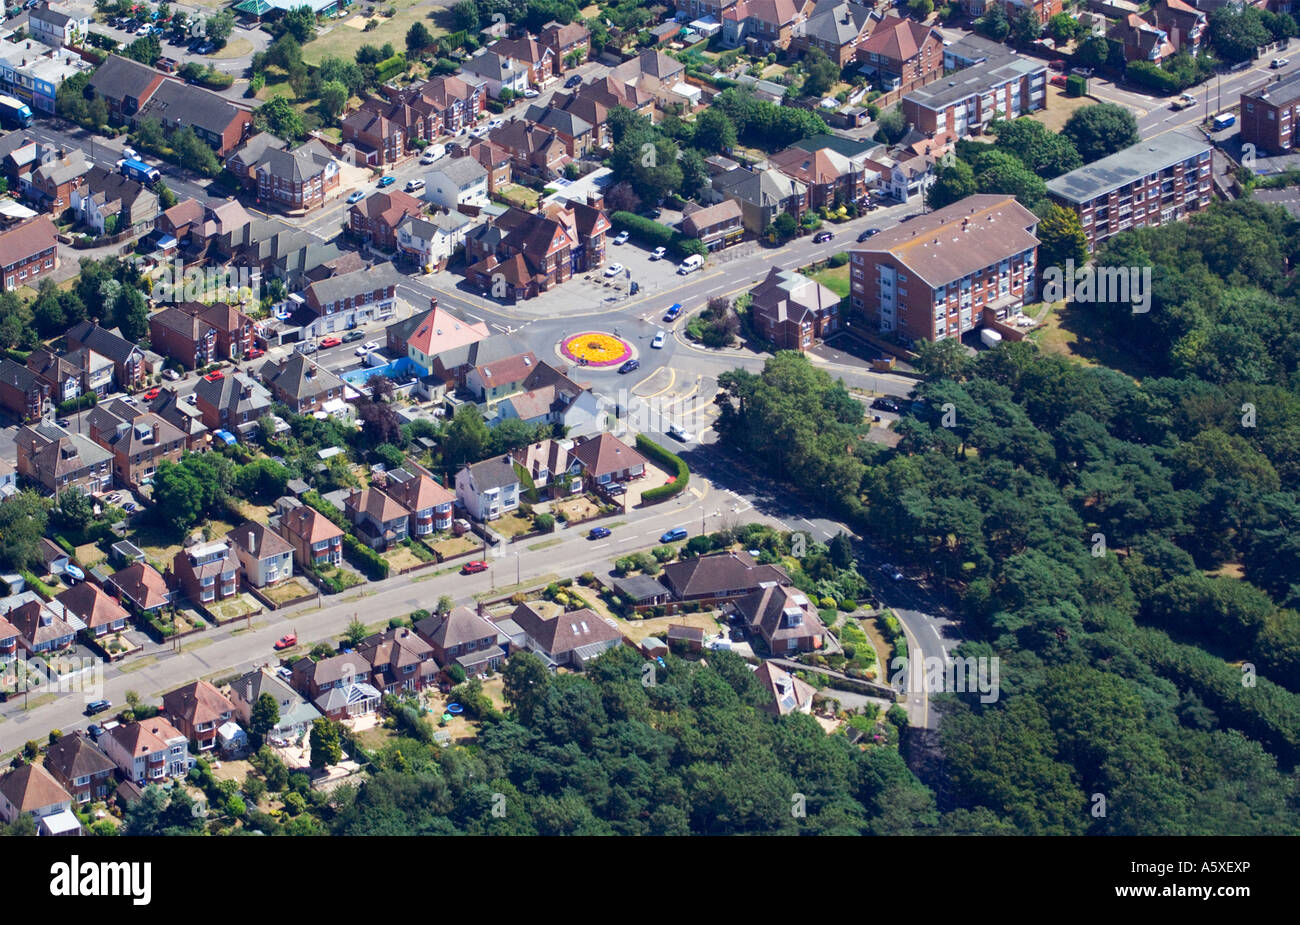 Aerial view. Houses and street layout. Floral roundabout. Poole suburbs . Dorset. UK. - Stock Image